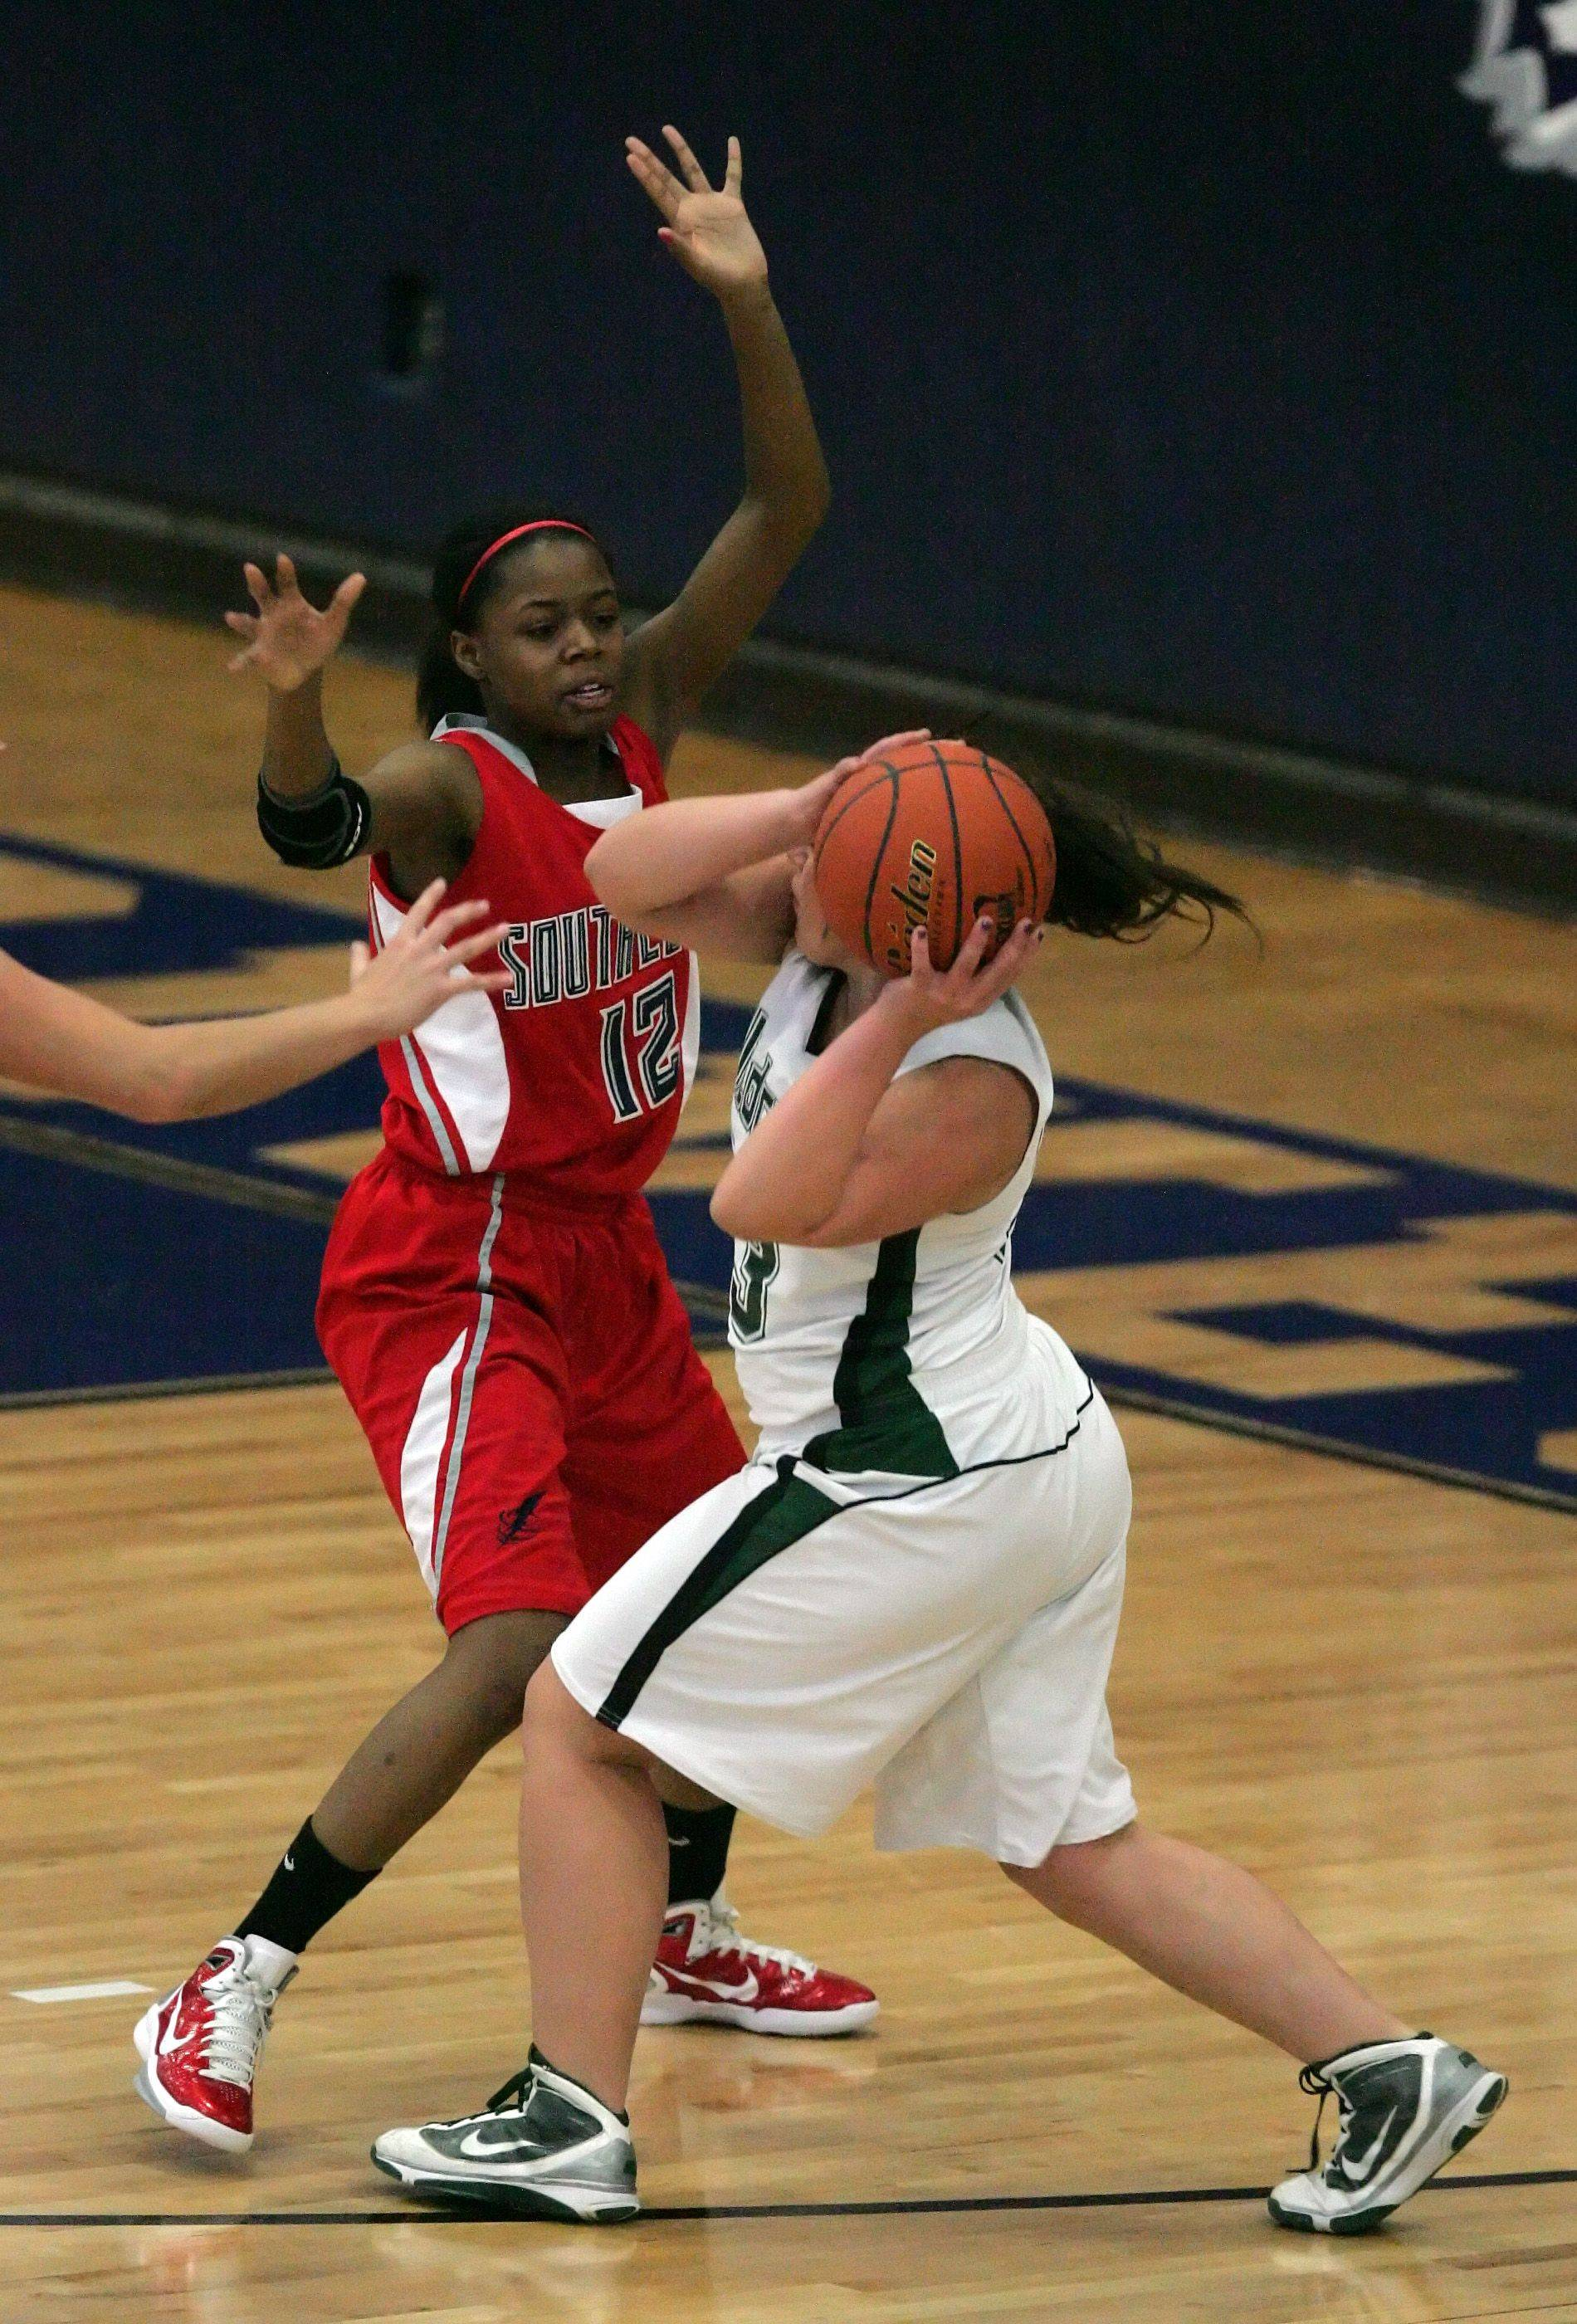 South Elgin guard Nicole Lewis (12) puts on the defensive pressure during action at the Oswego East tournament Tuesday.